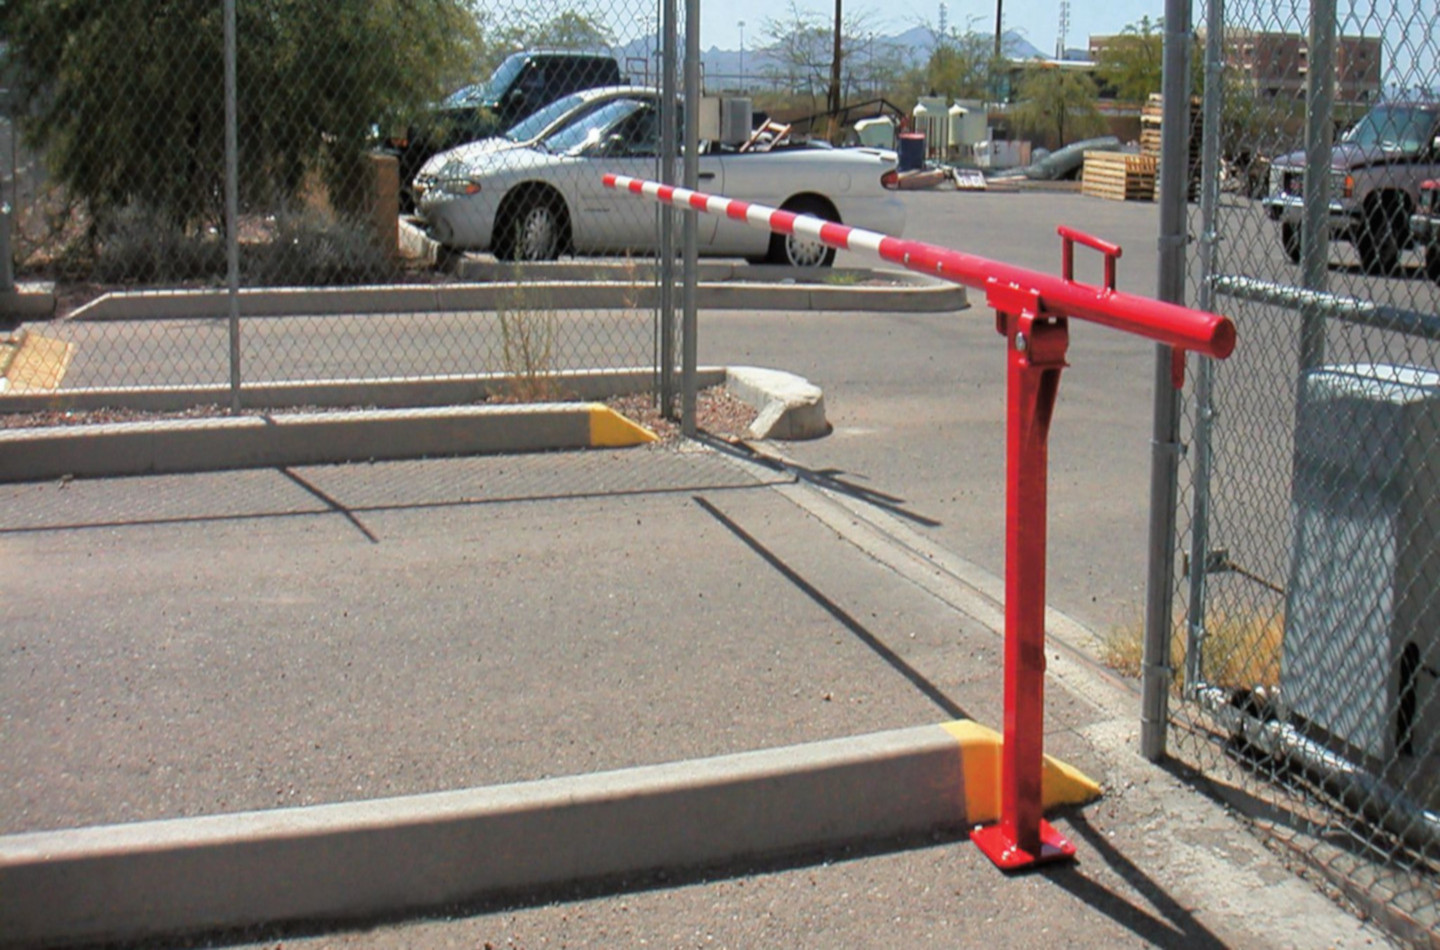 Commercial Gate Operators Openers Liftmaster Openner Schematics Manual Lift And Swing Gates